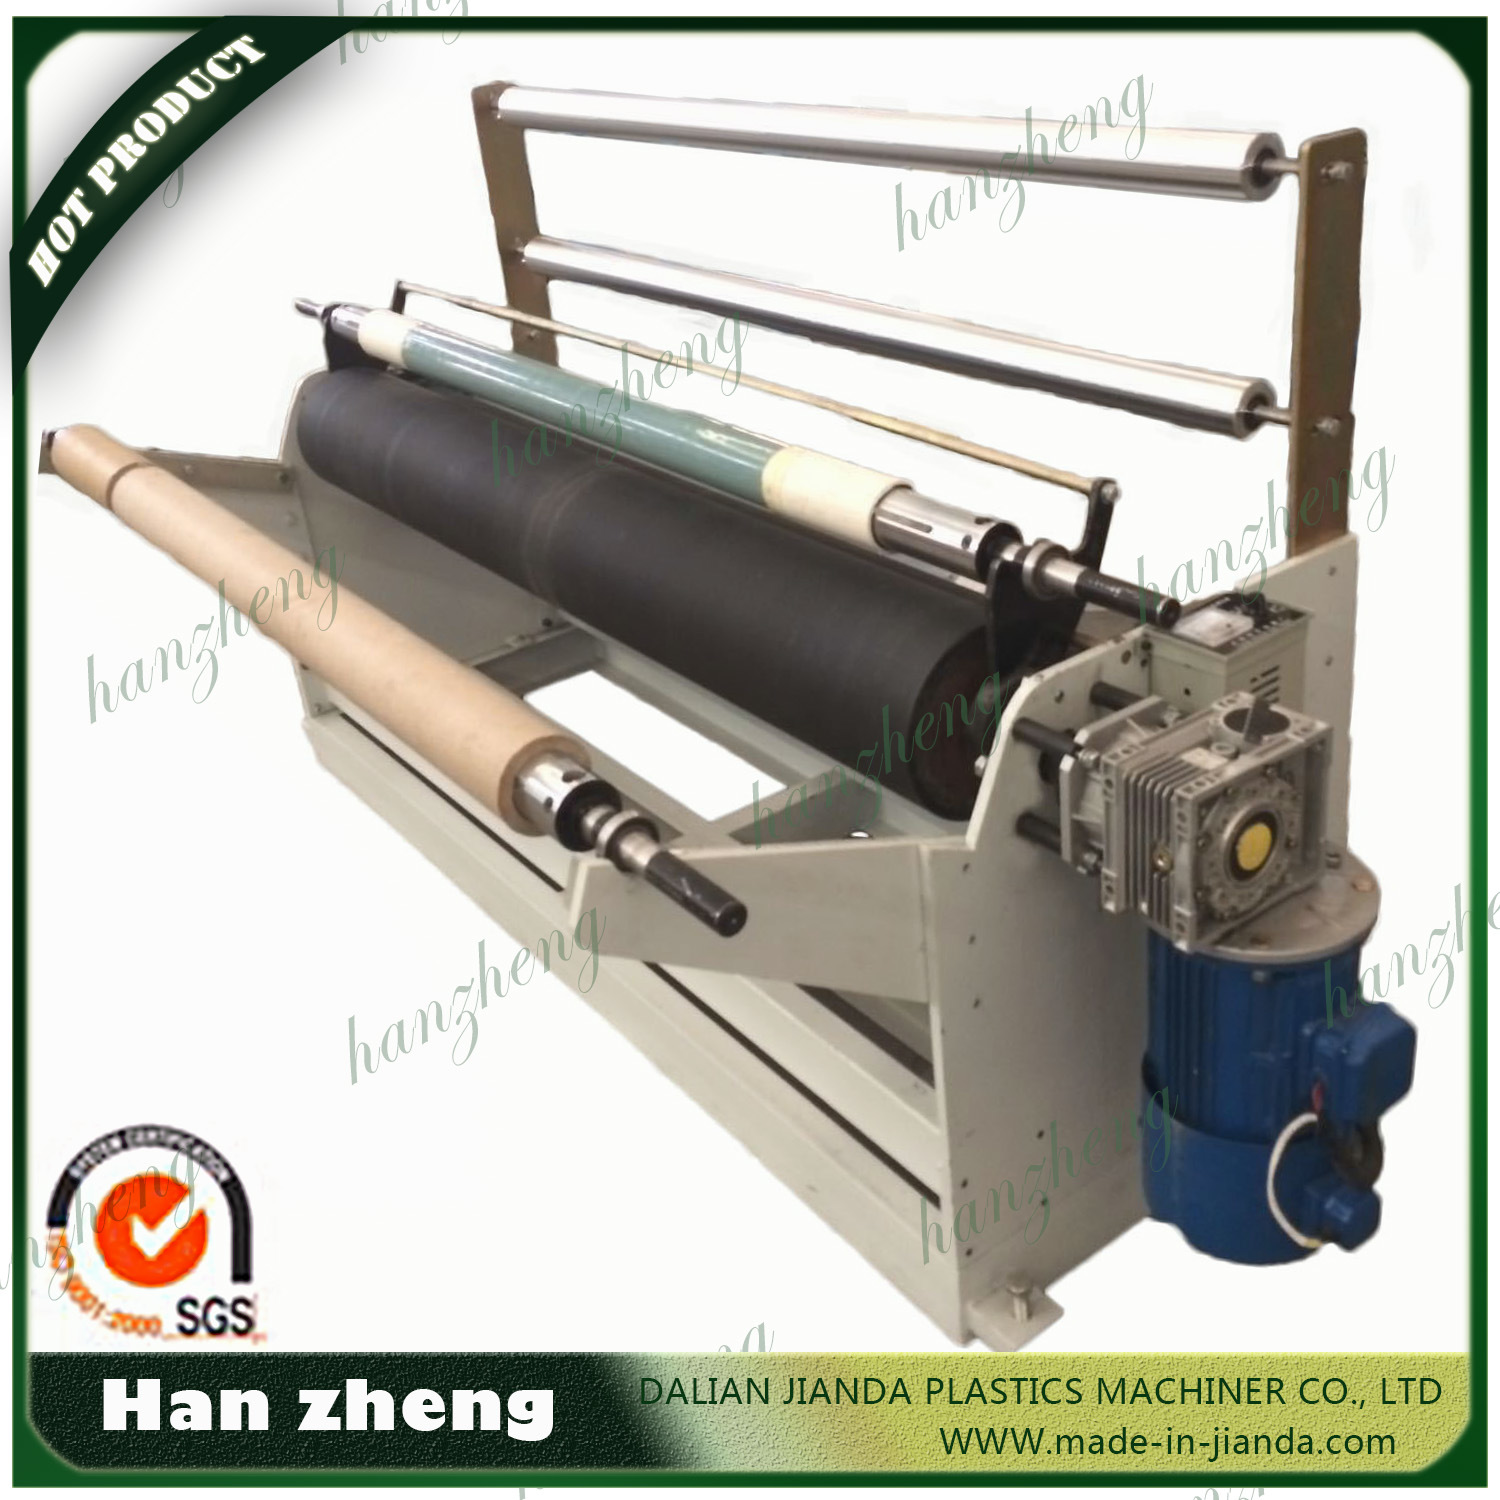 ABA HDPE Low Pressure Plastic Film Blowing Machine T-Shirt Plastic Bag Making Machine Sjm40-2-700